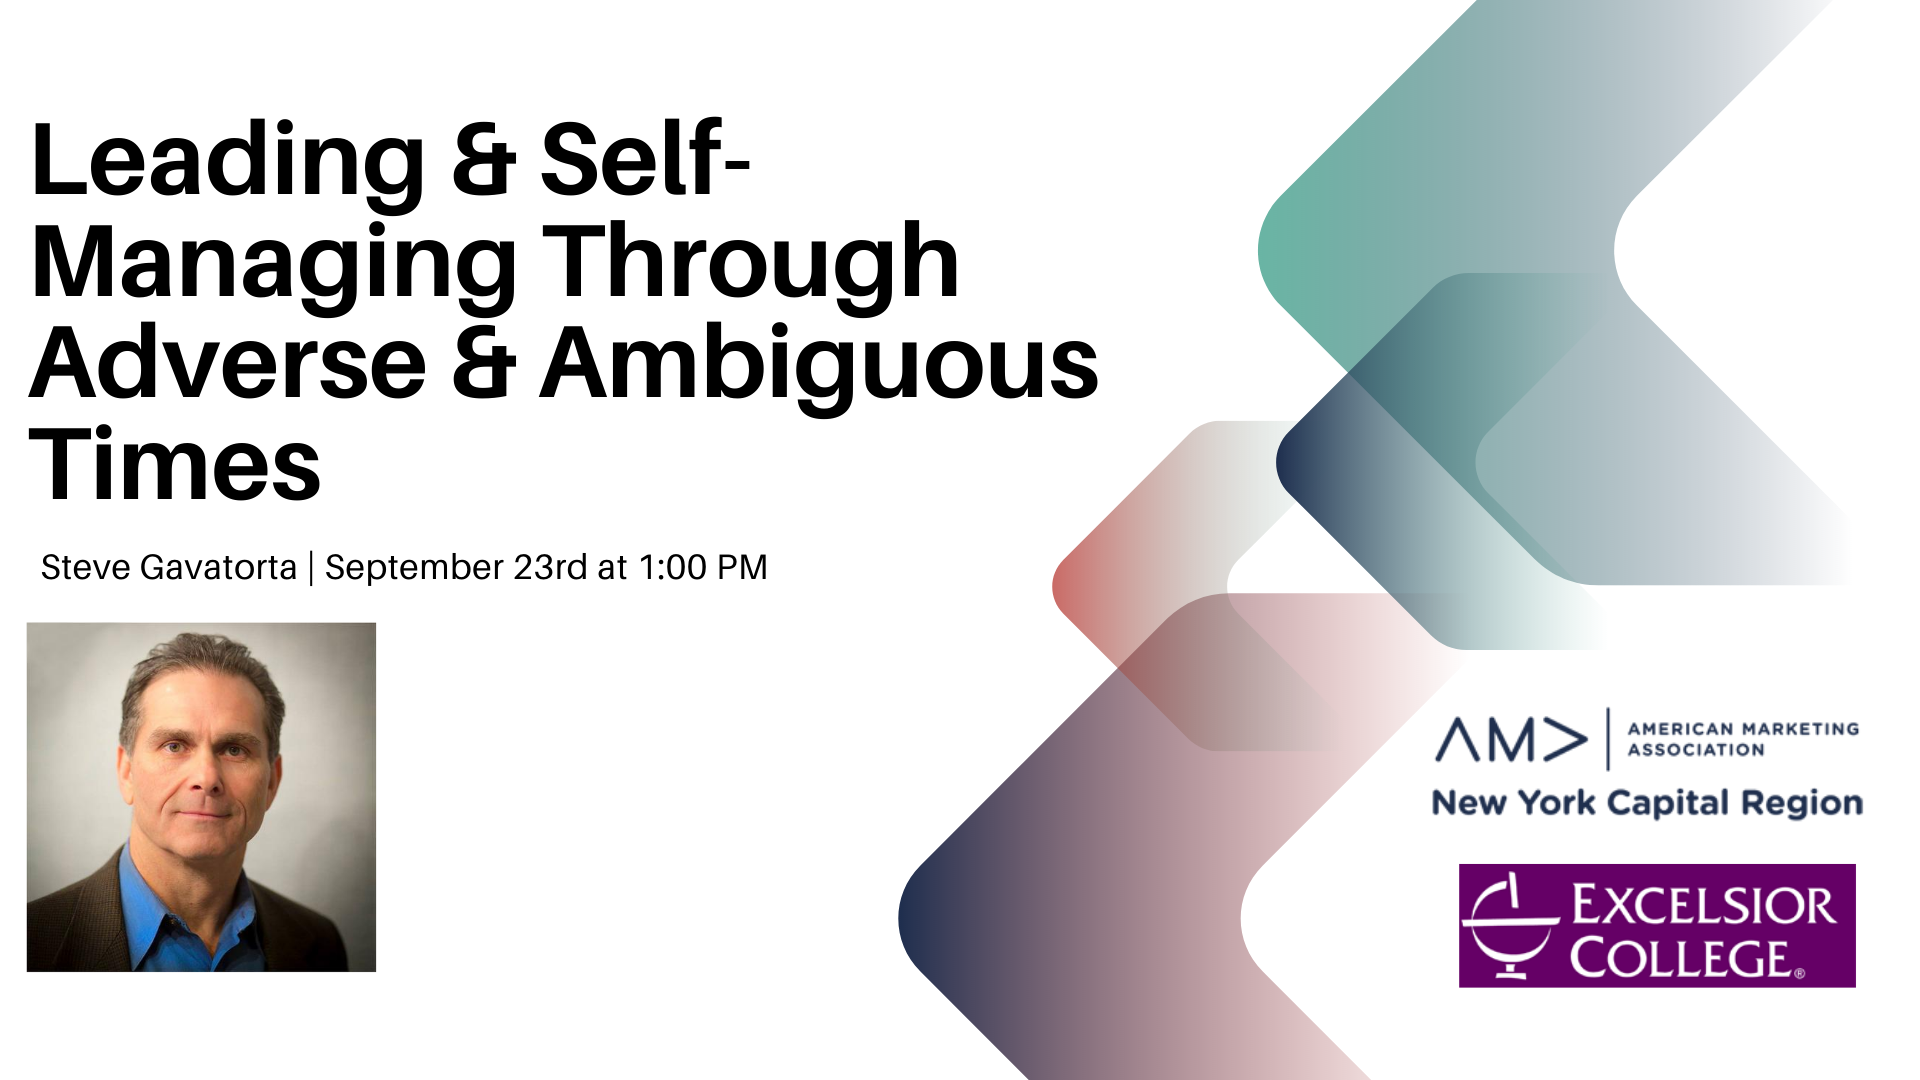 Leading Self-Managing Through Adverse Ambiguous Times